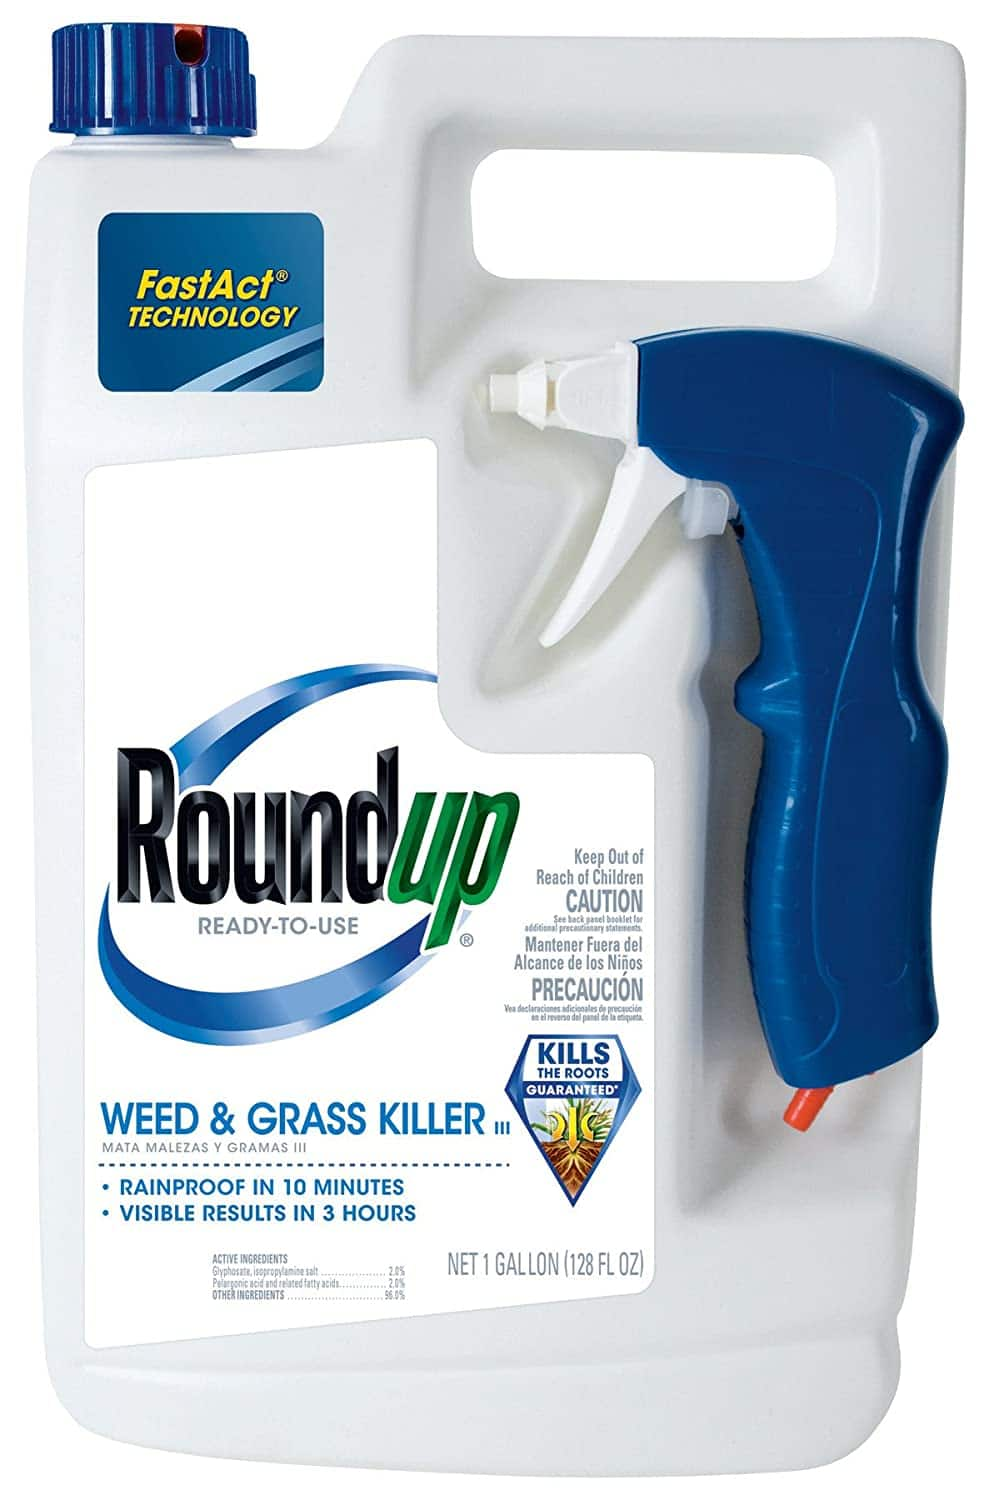 1-Gallon Roundup Weed and Grass Killer III w/ Ready to Use Trigger $7.95 + Free Prime Shipping